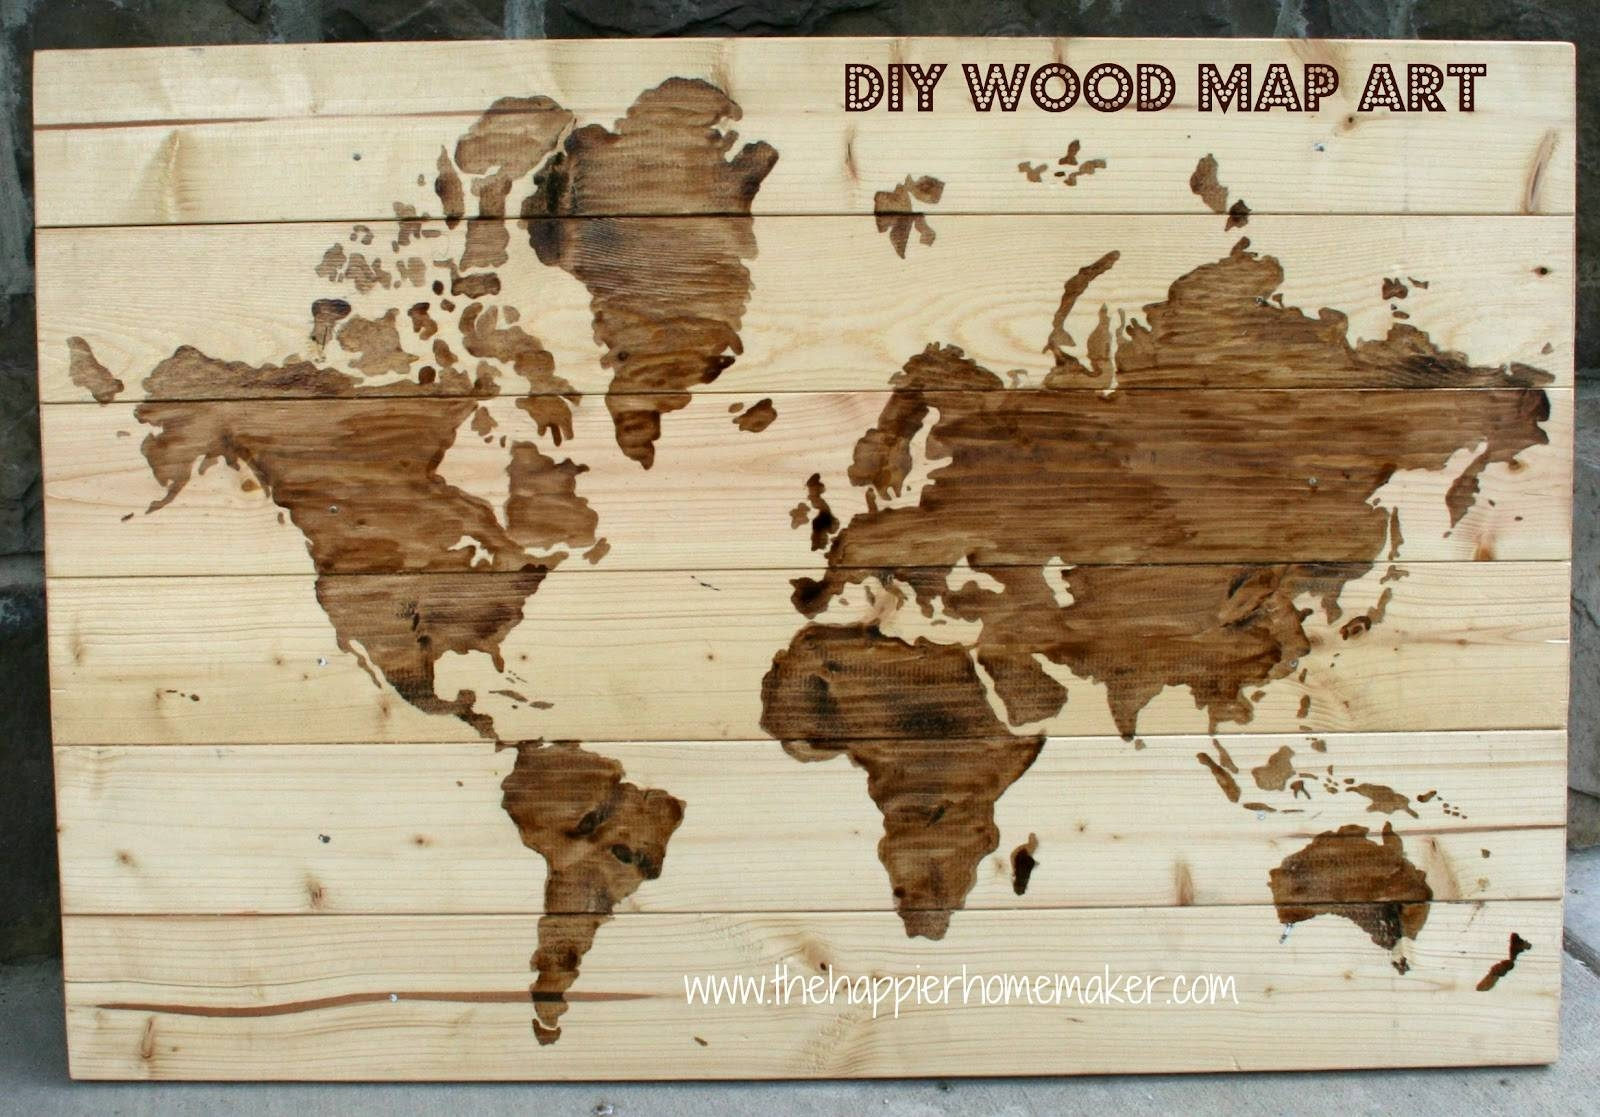 Diy Wooden World Map Art | The Happier Homemaker Intended For Most Up To Date Wooden World Map Wall Art (View 6 of 20)